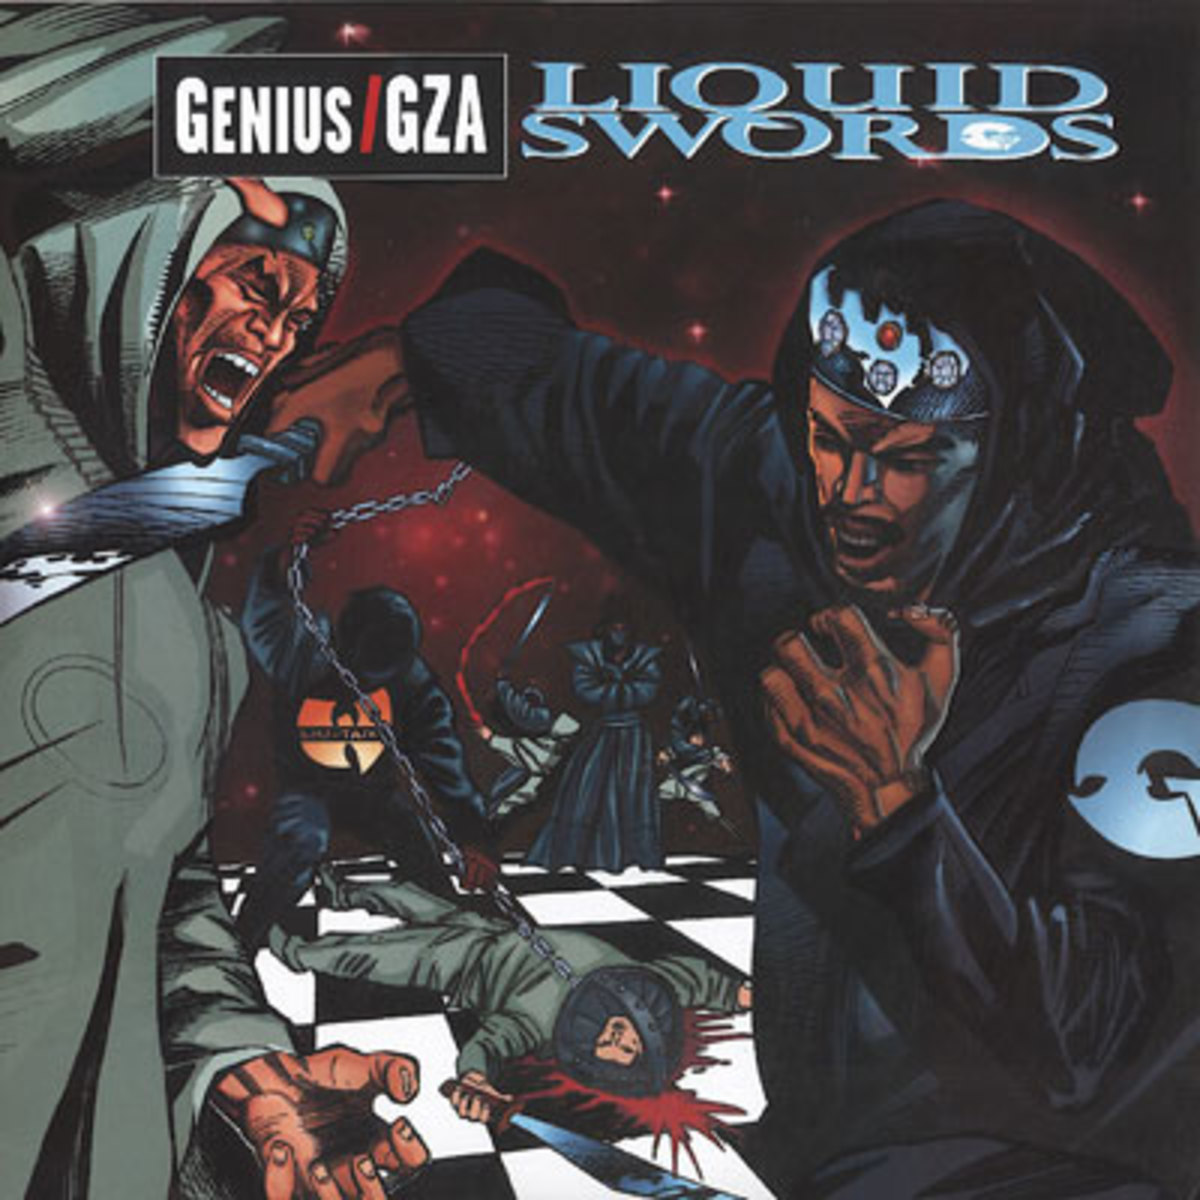 gza-liquid-swords.jpg